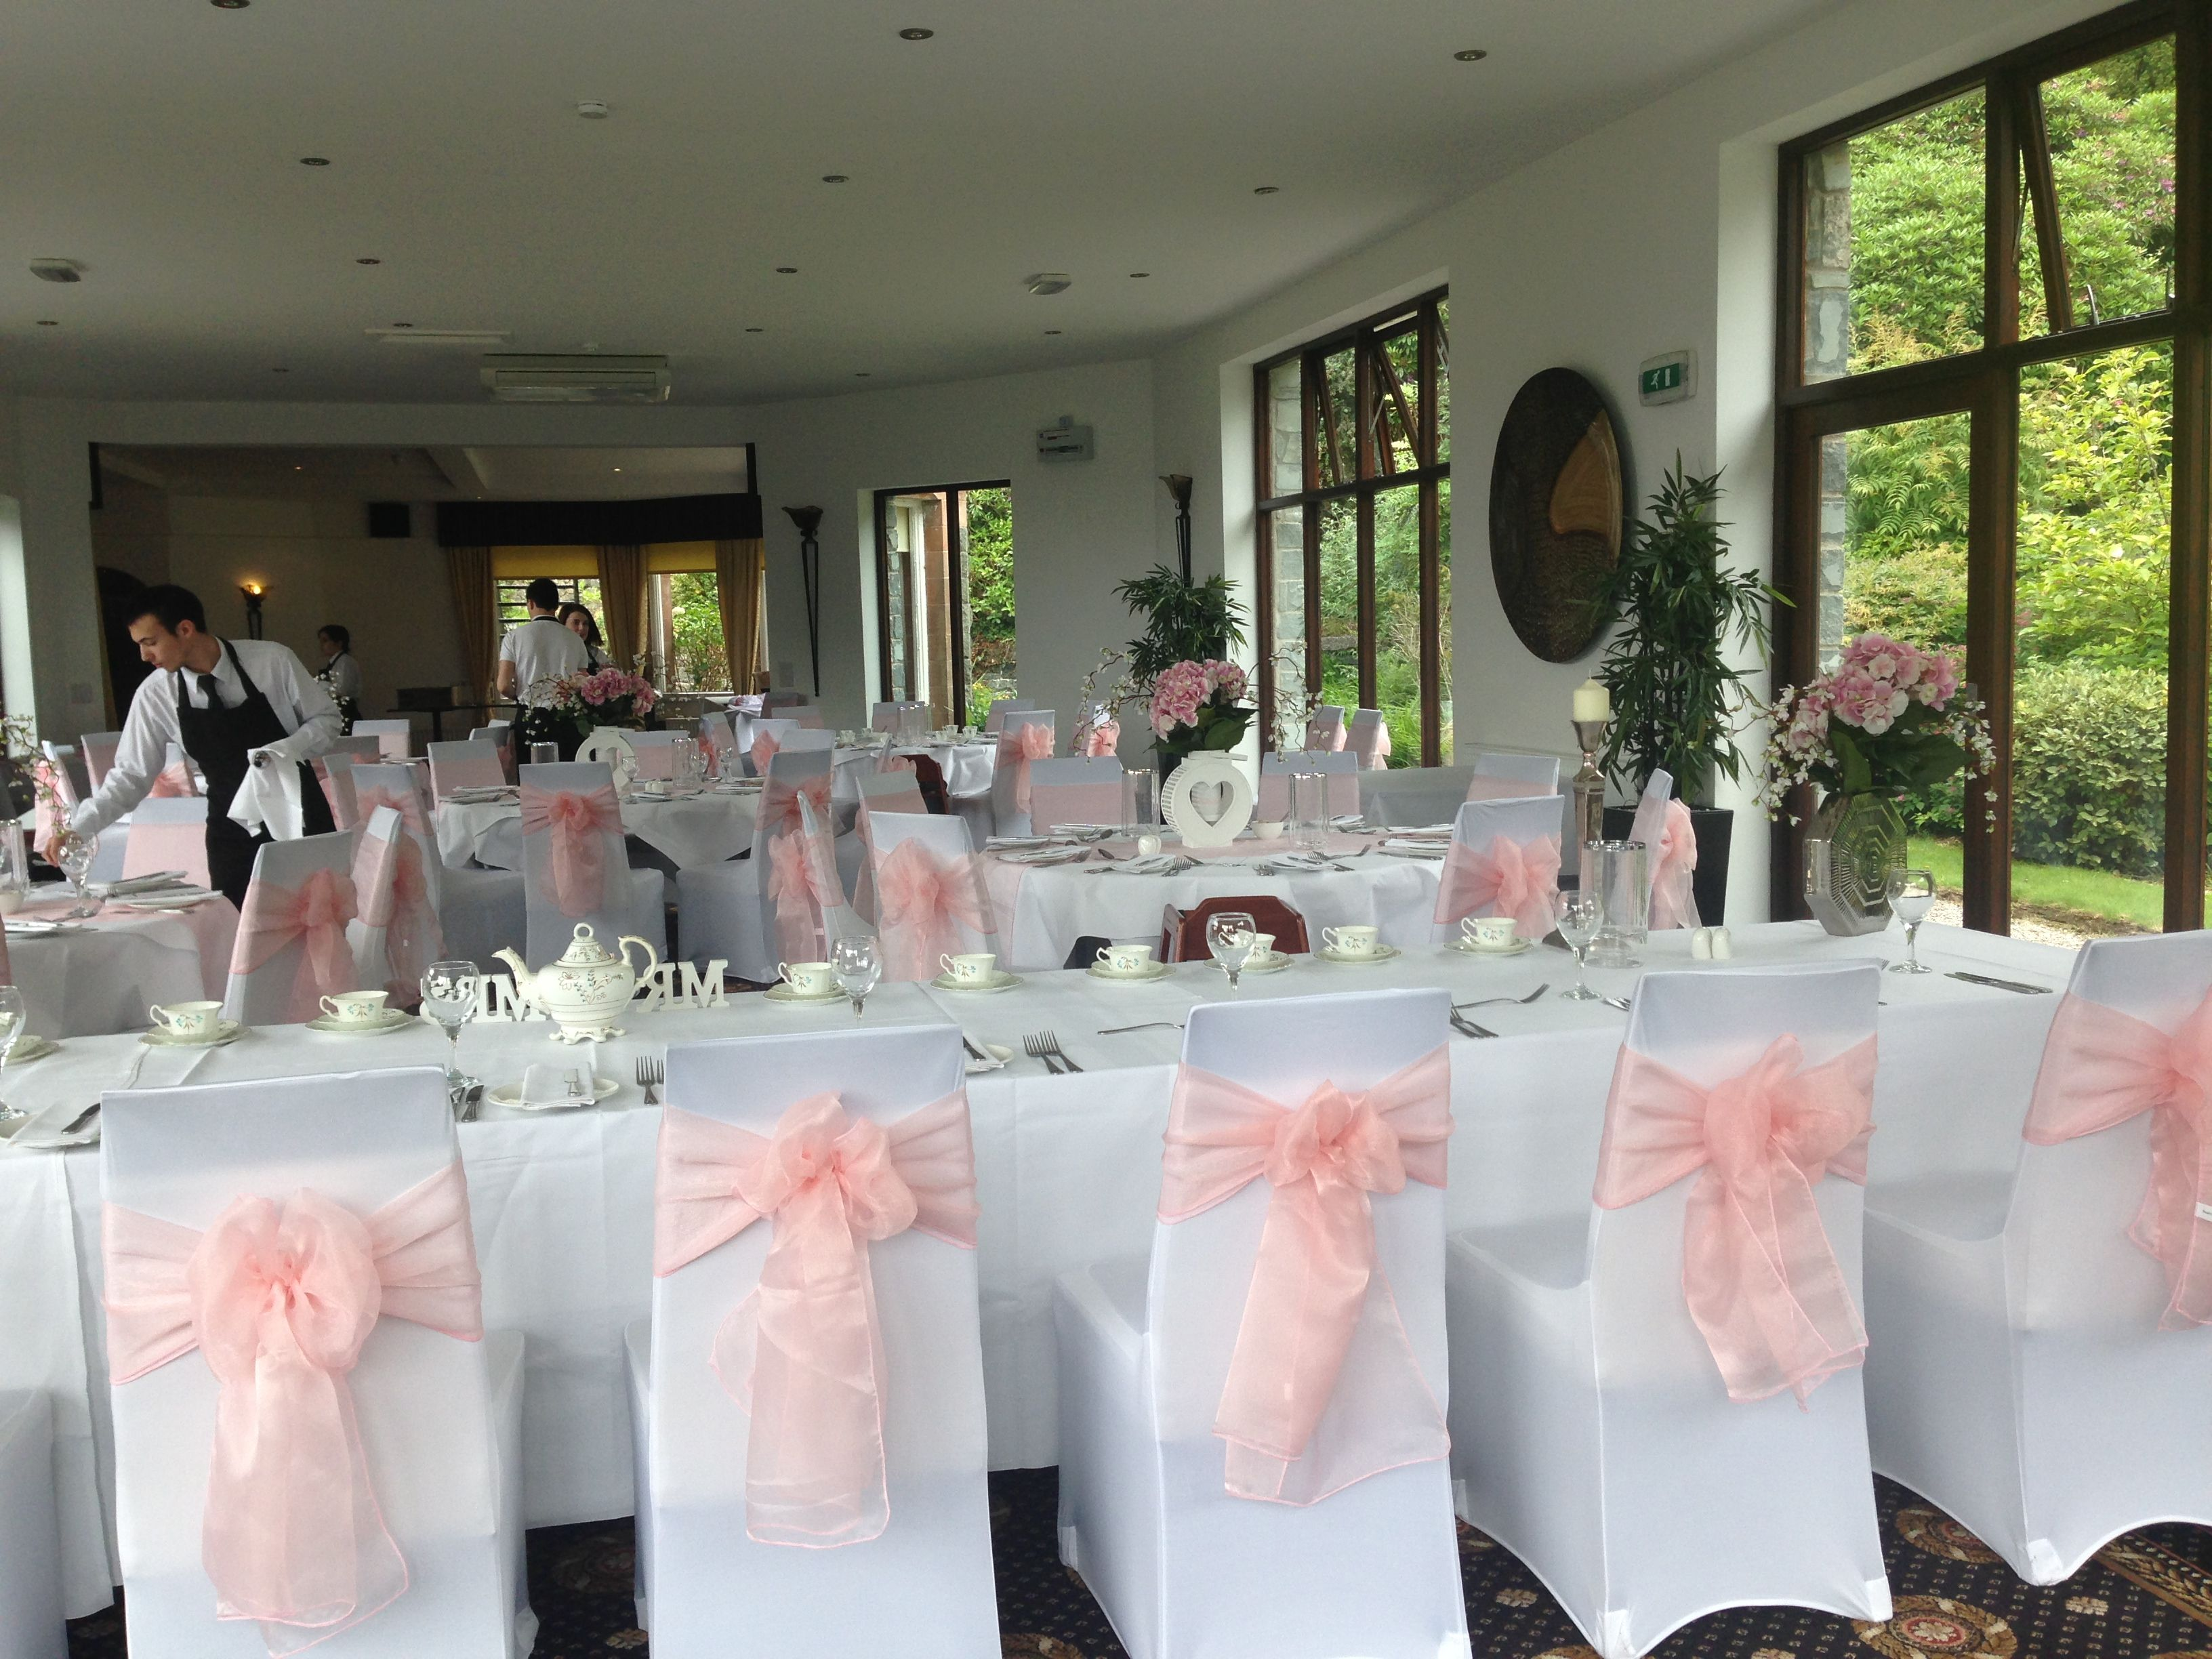 wedding chair covers melbourne fabric parsons chairs white and pale baby pink sashes bron eifion